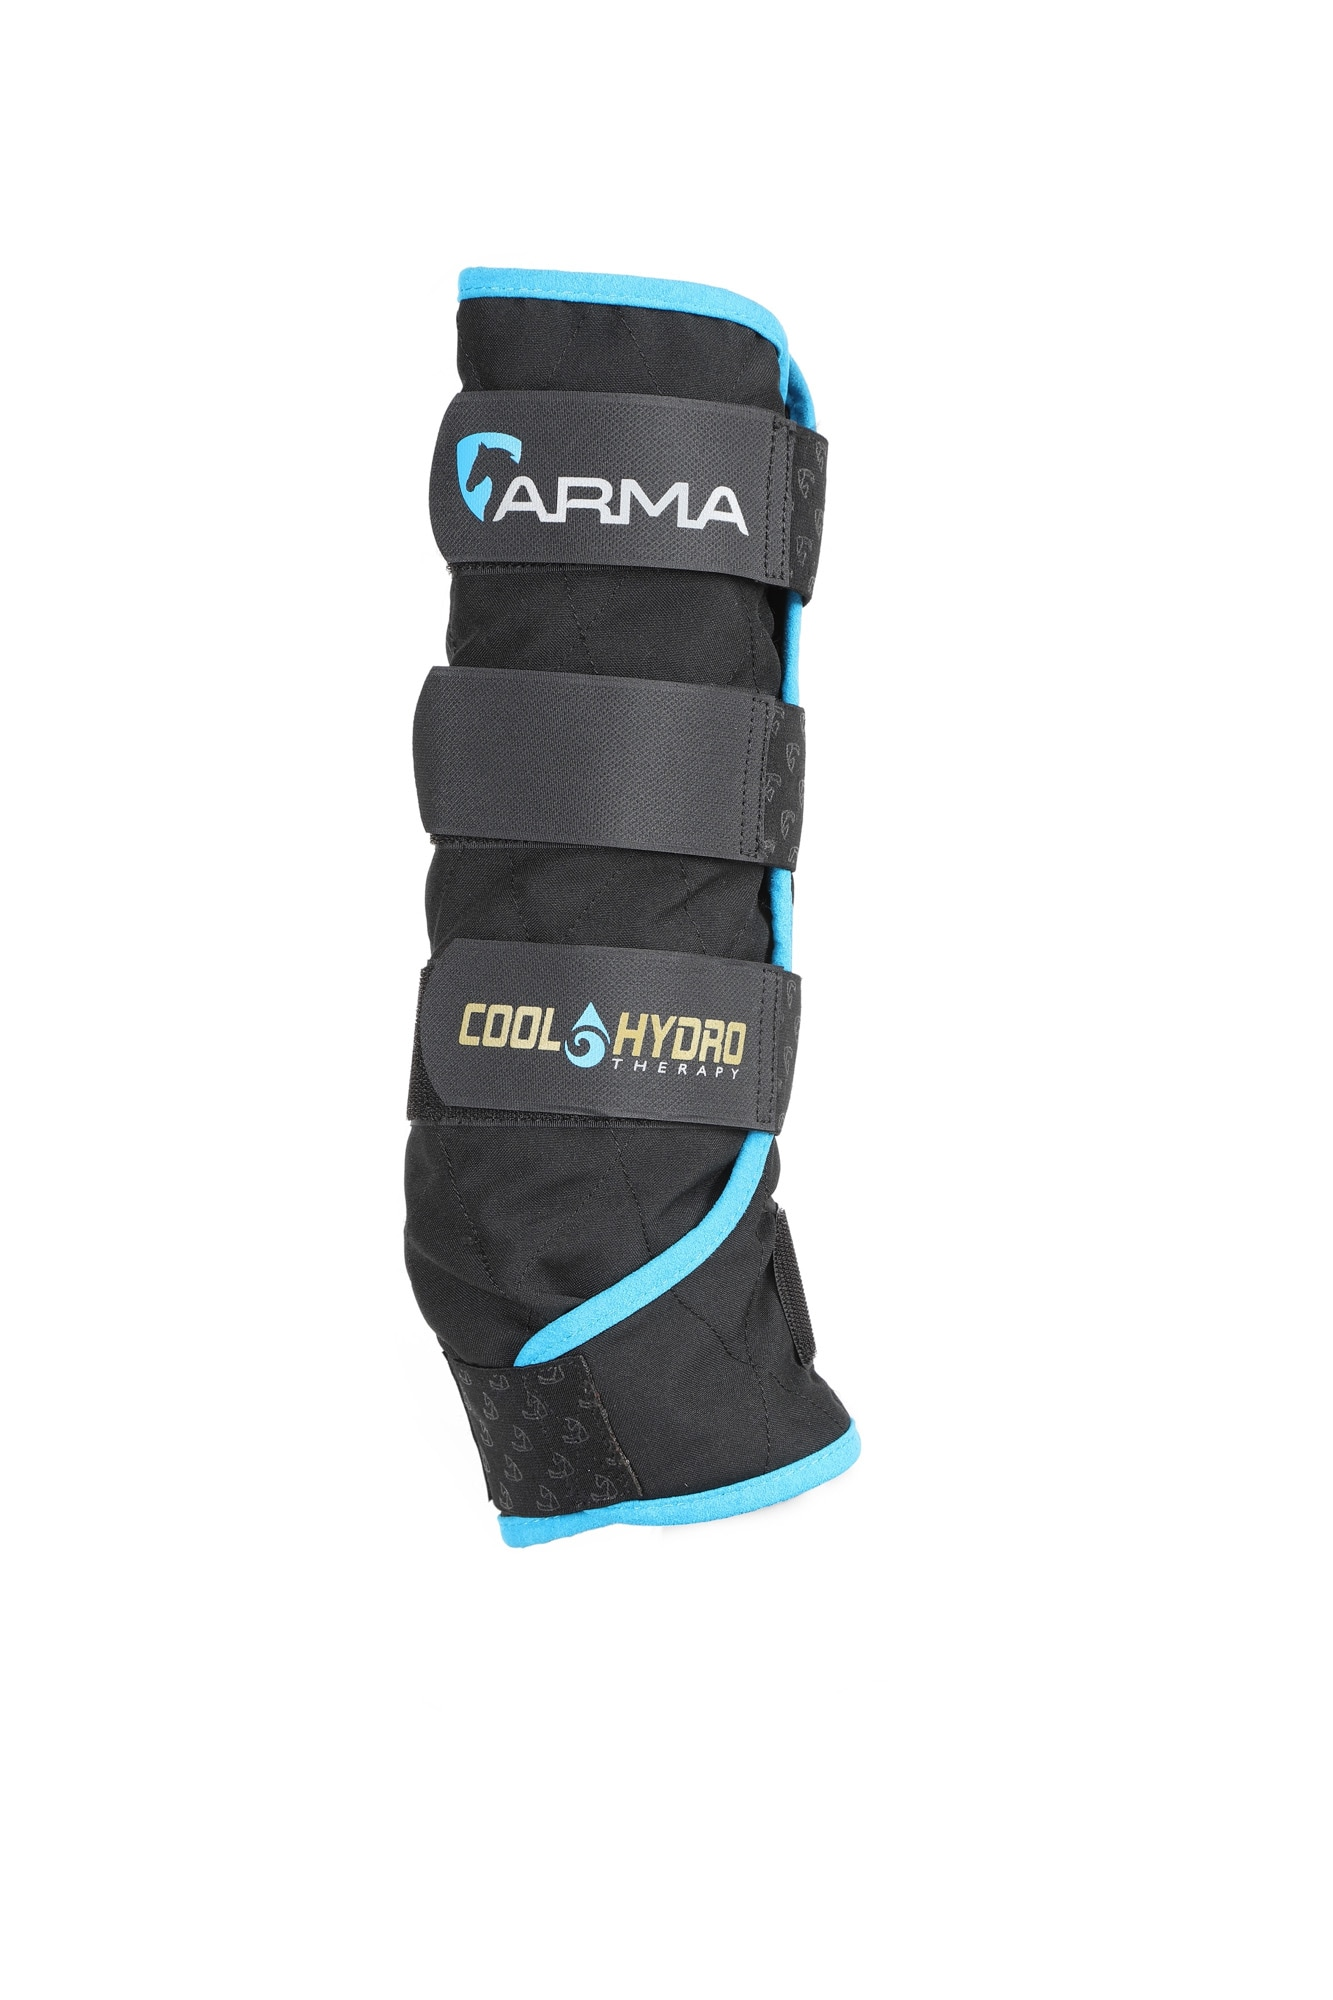 arma-kylbandage-cool-hydro-therapy